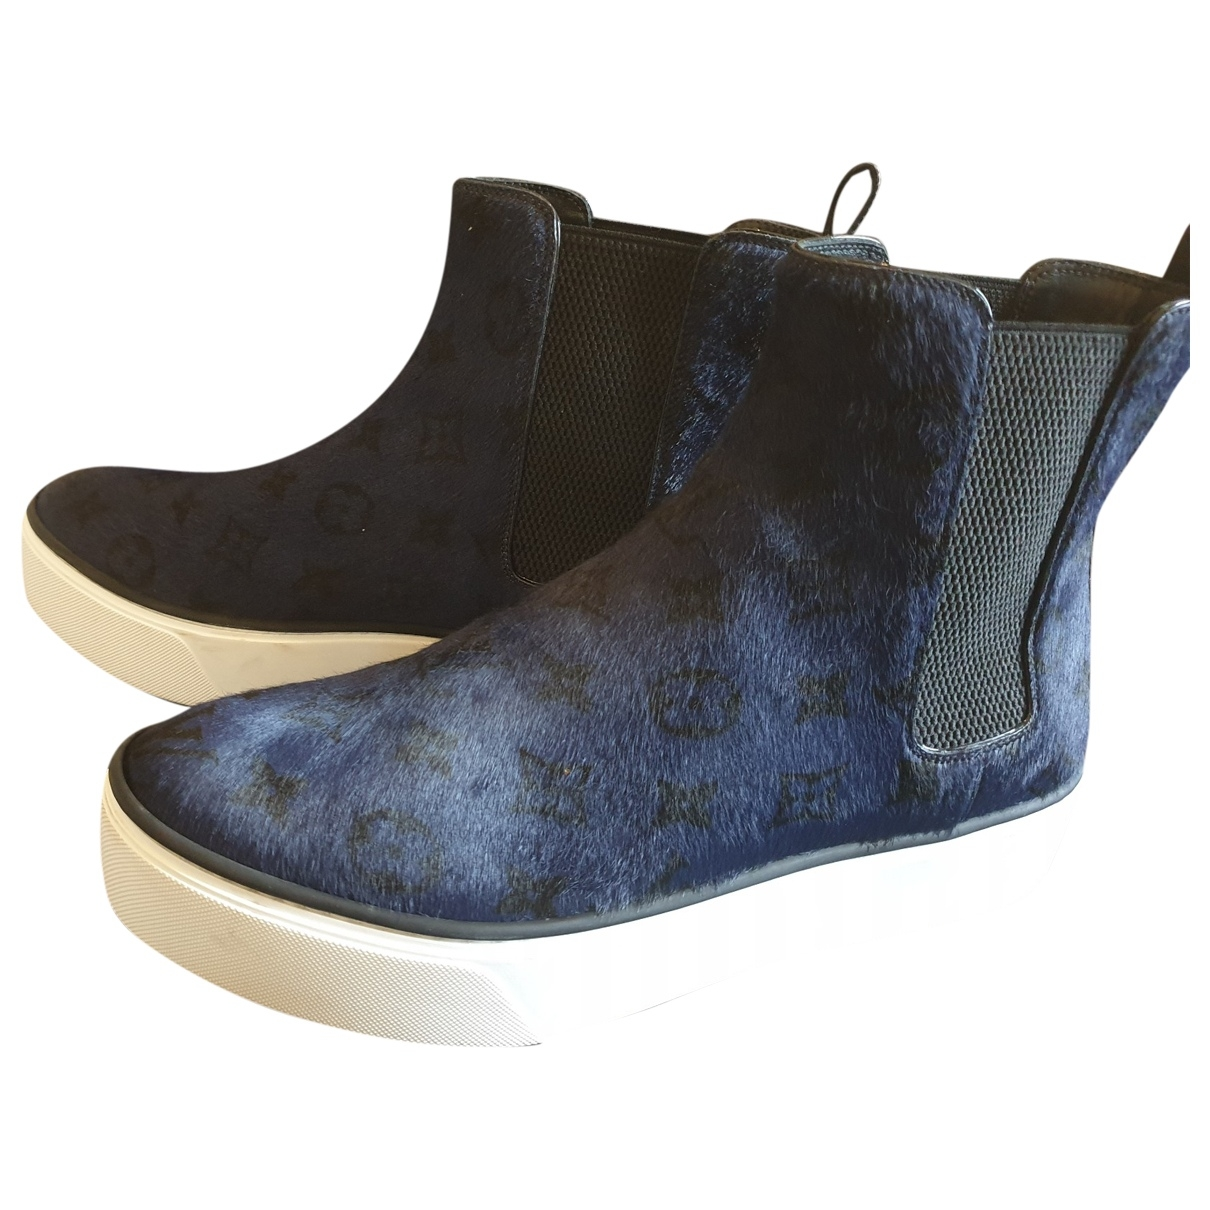 Louis Vuitton \N Blue Pony-style calfskin Ankle boots for Women 39 EU